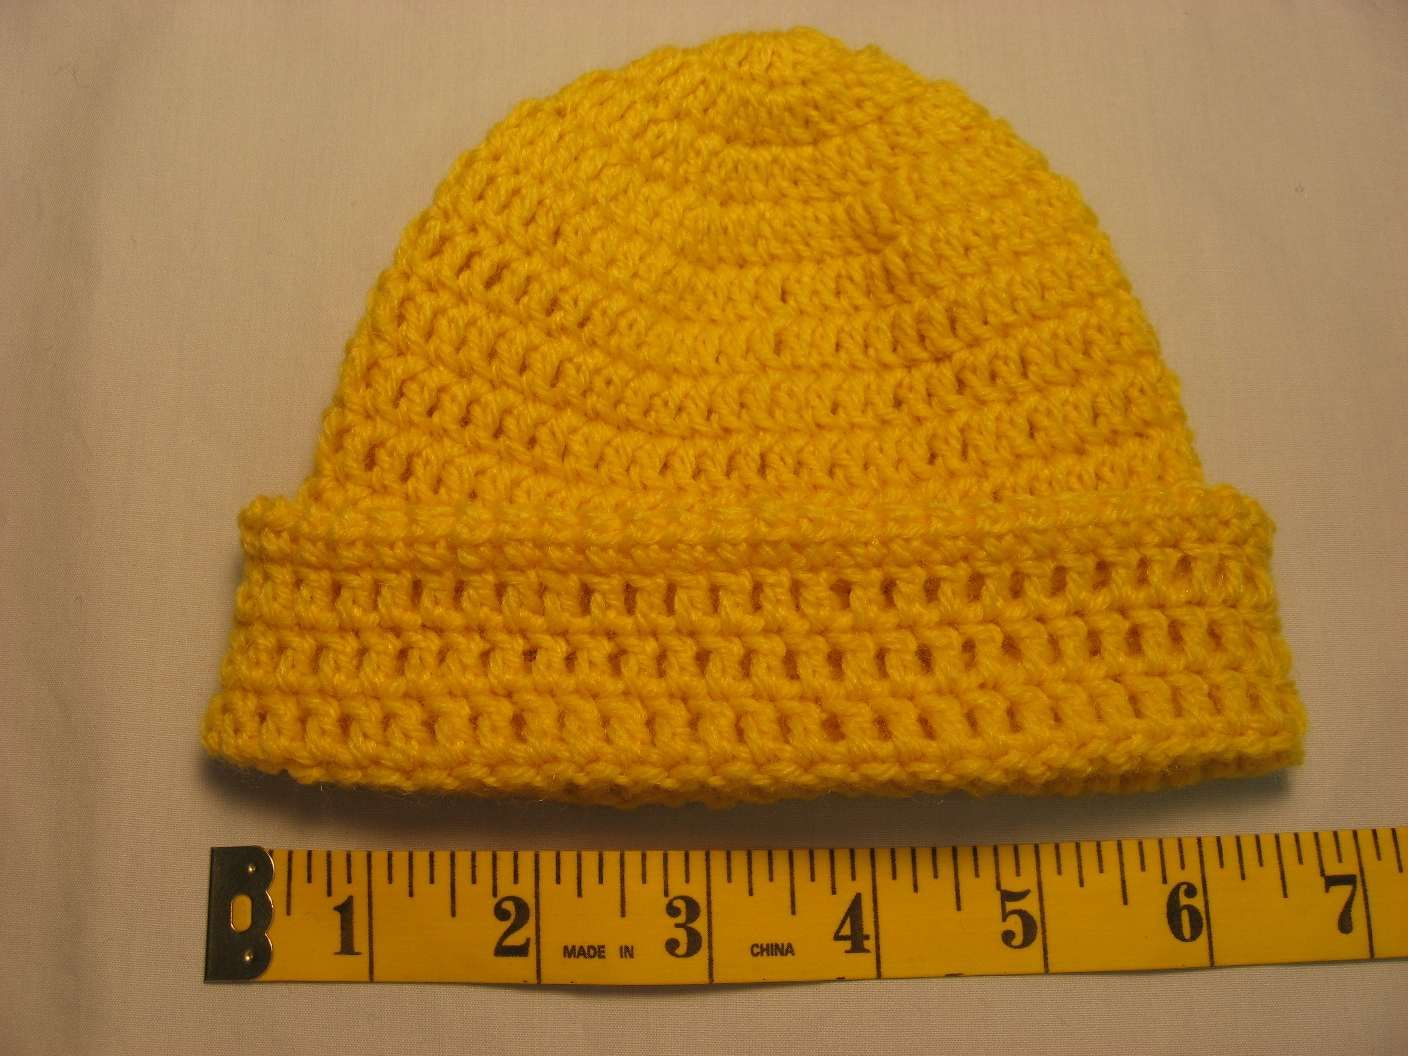 Crochet patterns for hats hooked on needles hats to crochet crochet patterns for hats hooked on needles bankloansurffo Gallery